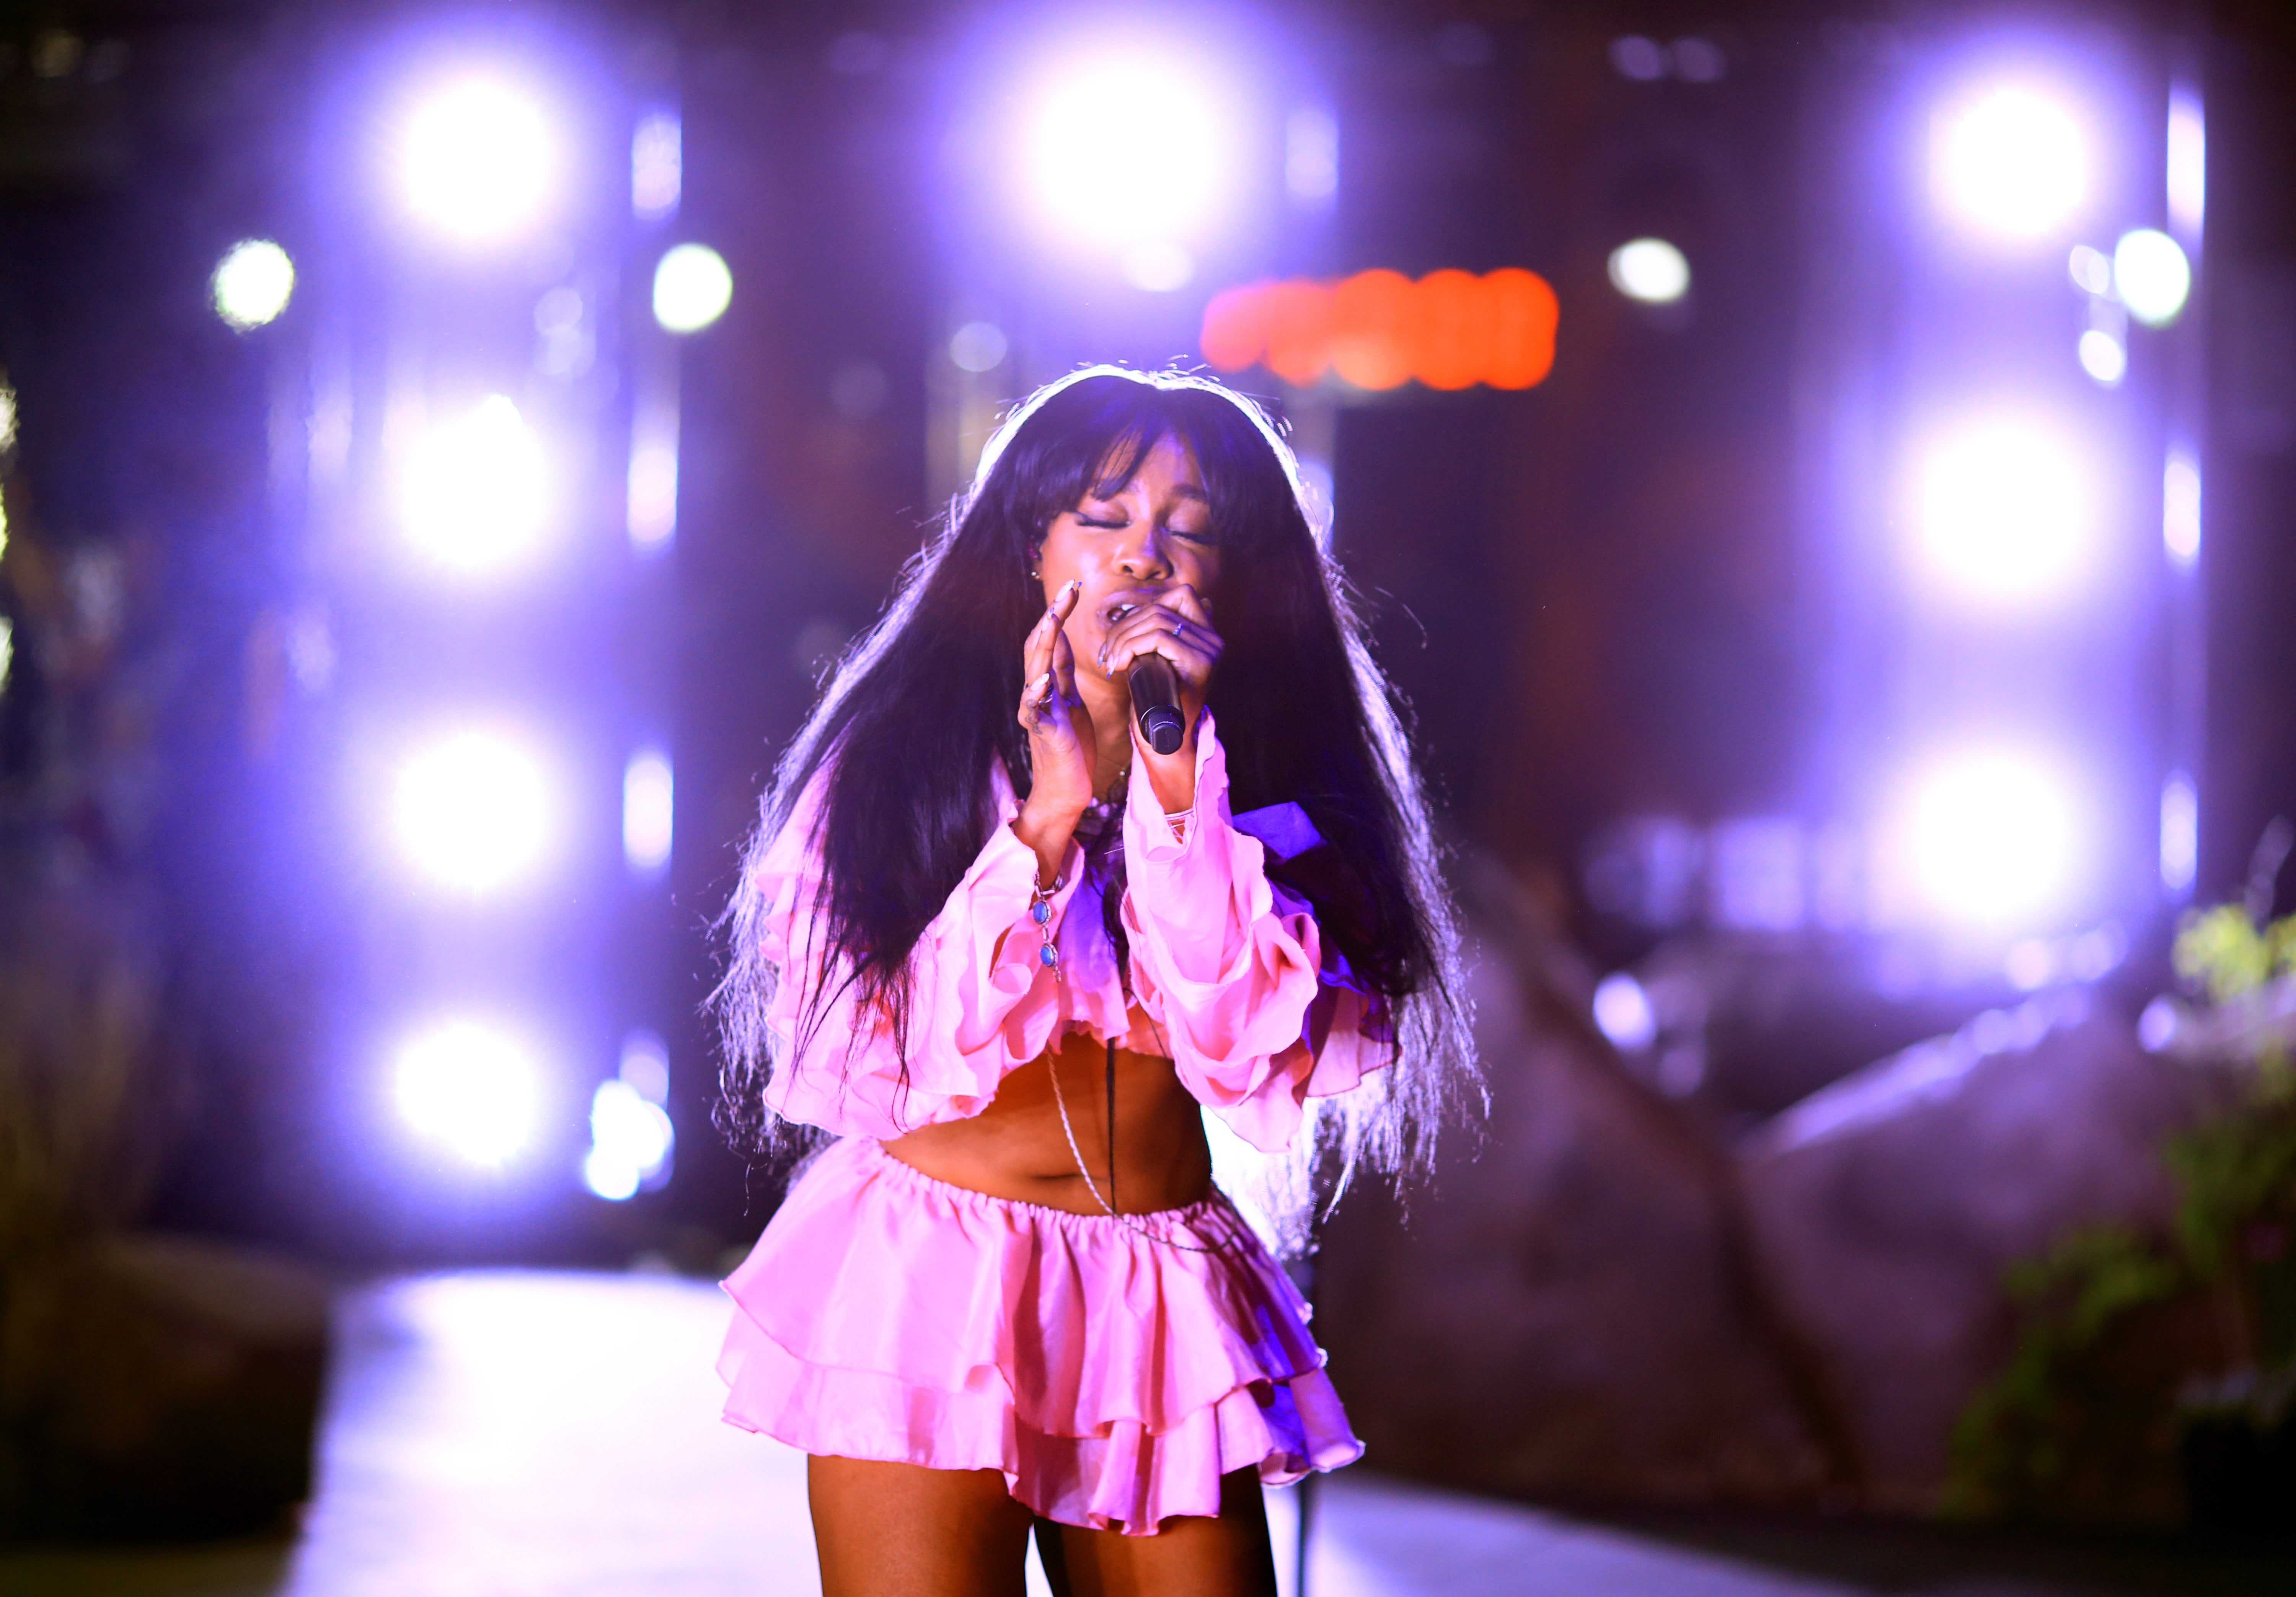 SZA, The Weeknd, Travis Scott Collaborate For 'Game Of Thrones' Song 'Power Is Power'